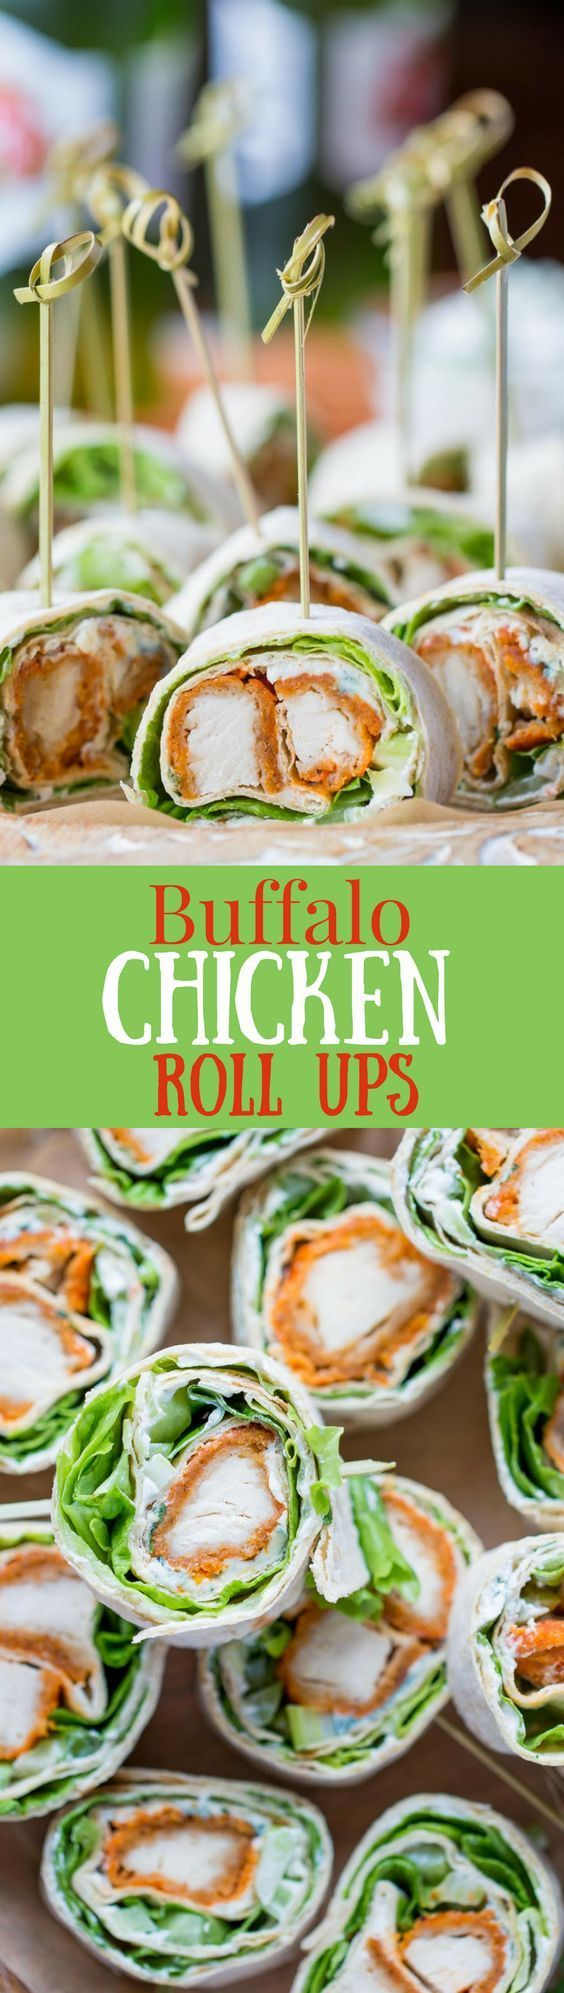 about Buffalo Chicken Tenders on Pinterest | Buffalo Chicken, Chicken ...